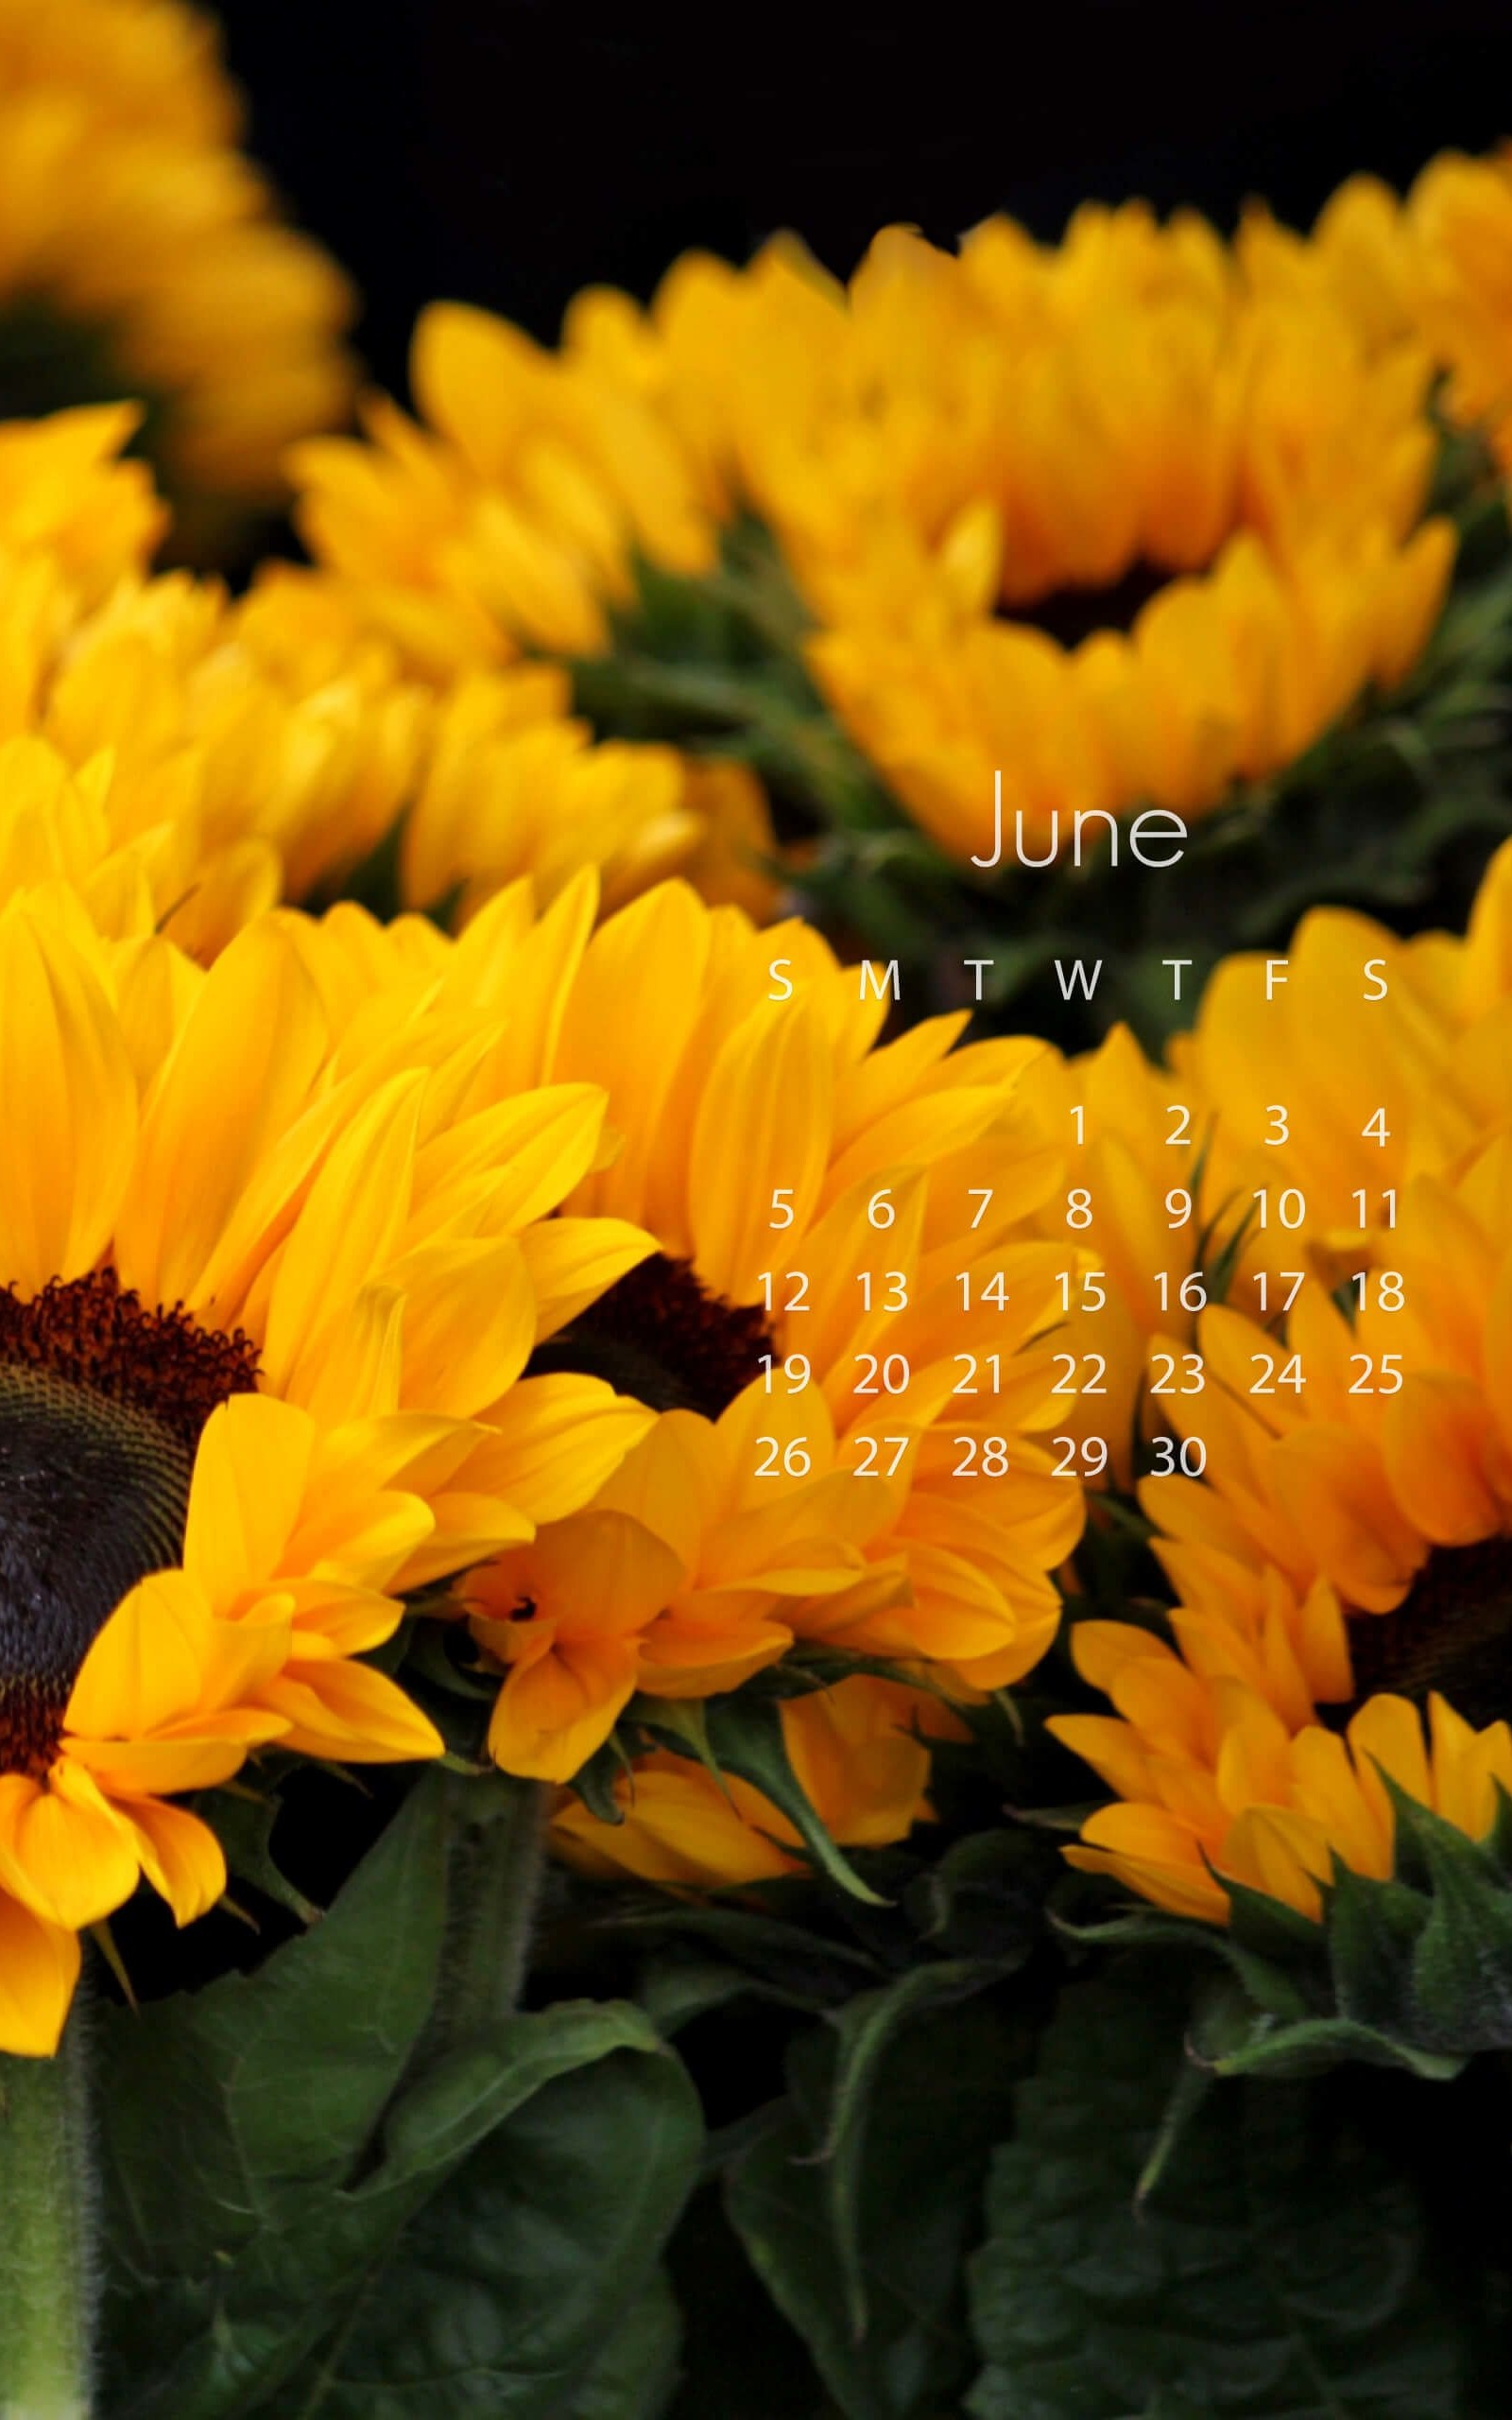 June 2016 Calendar Wallpaper for Amazon Kindle Fire HDX 8.9